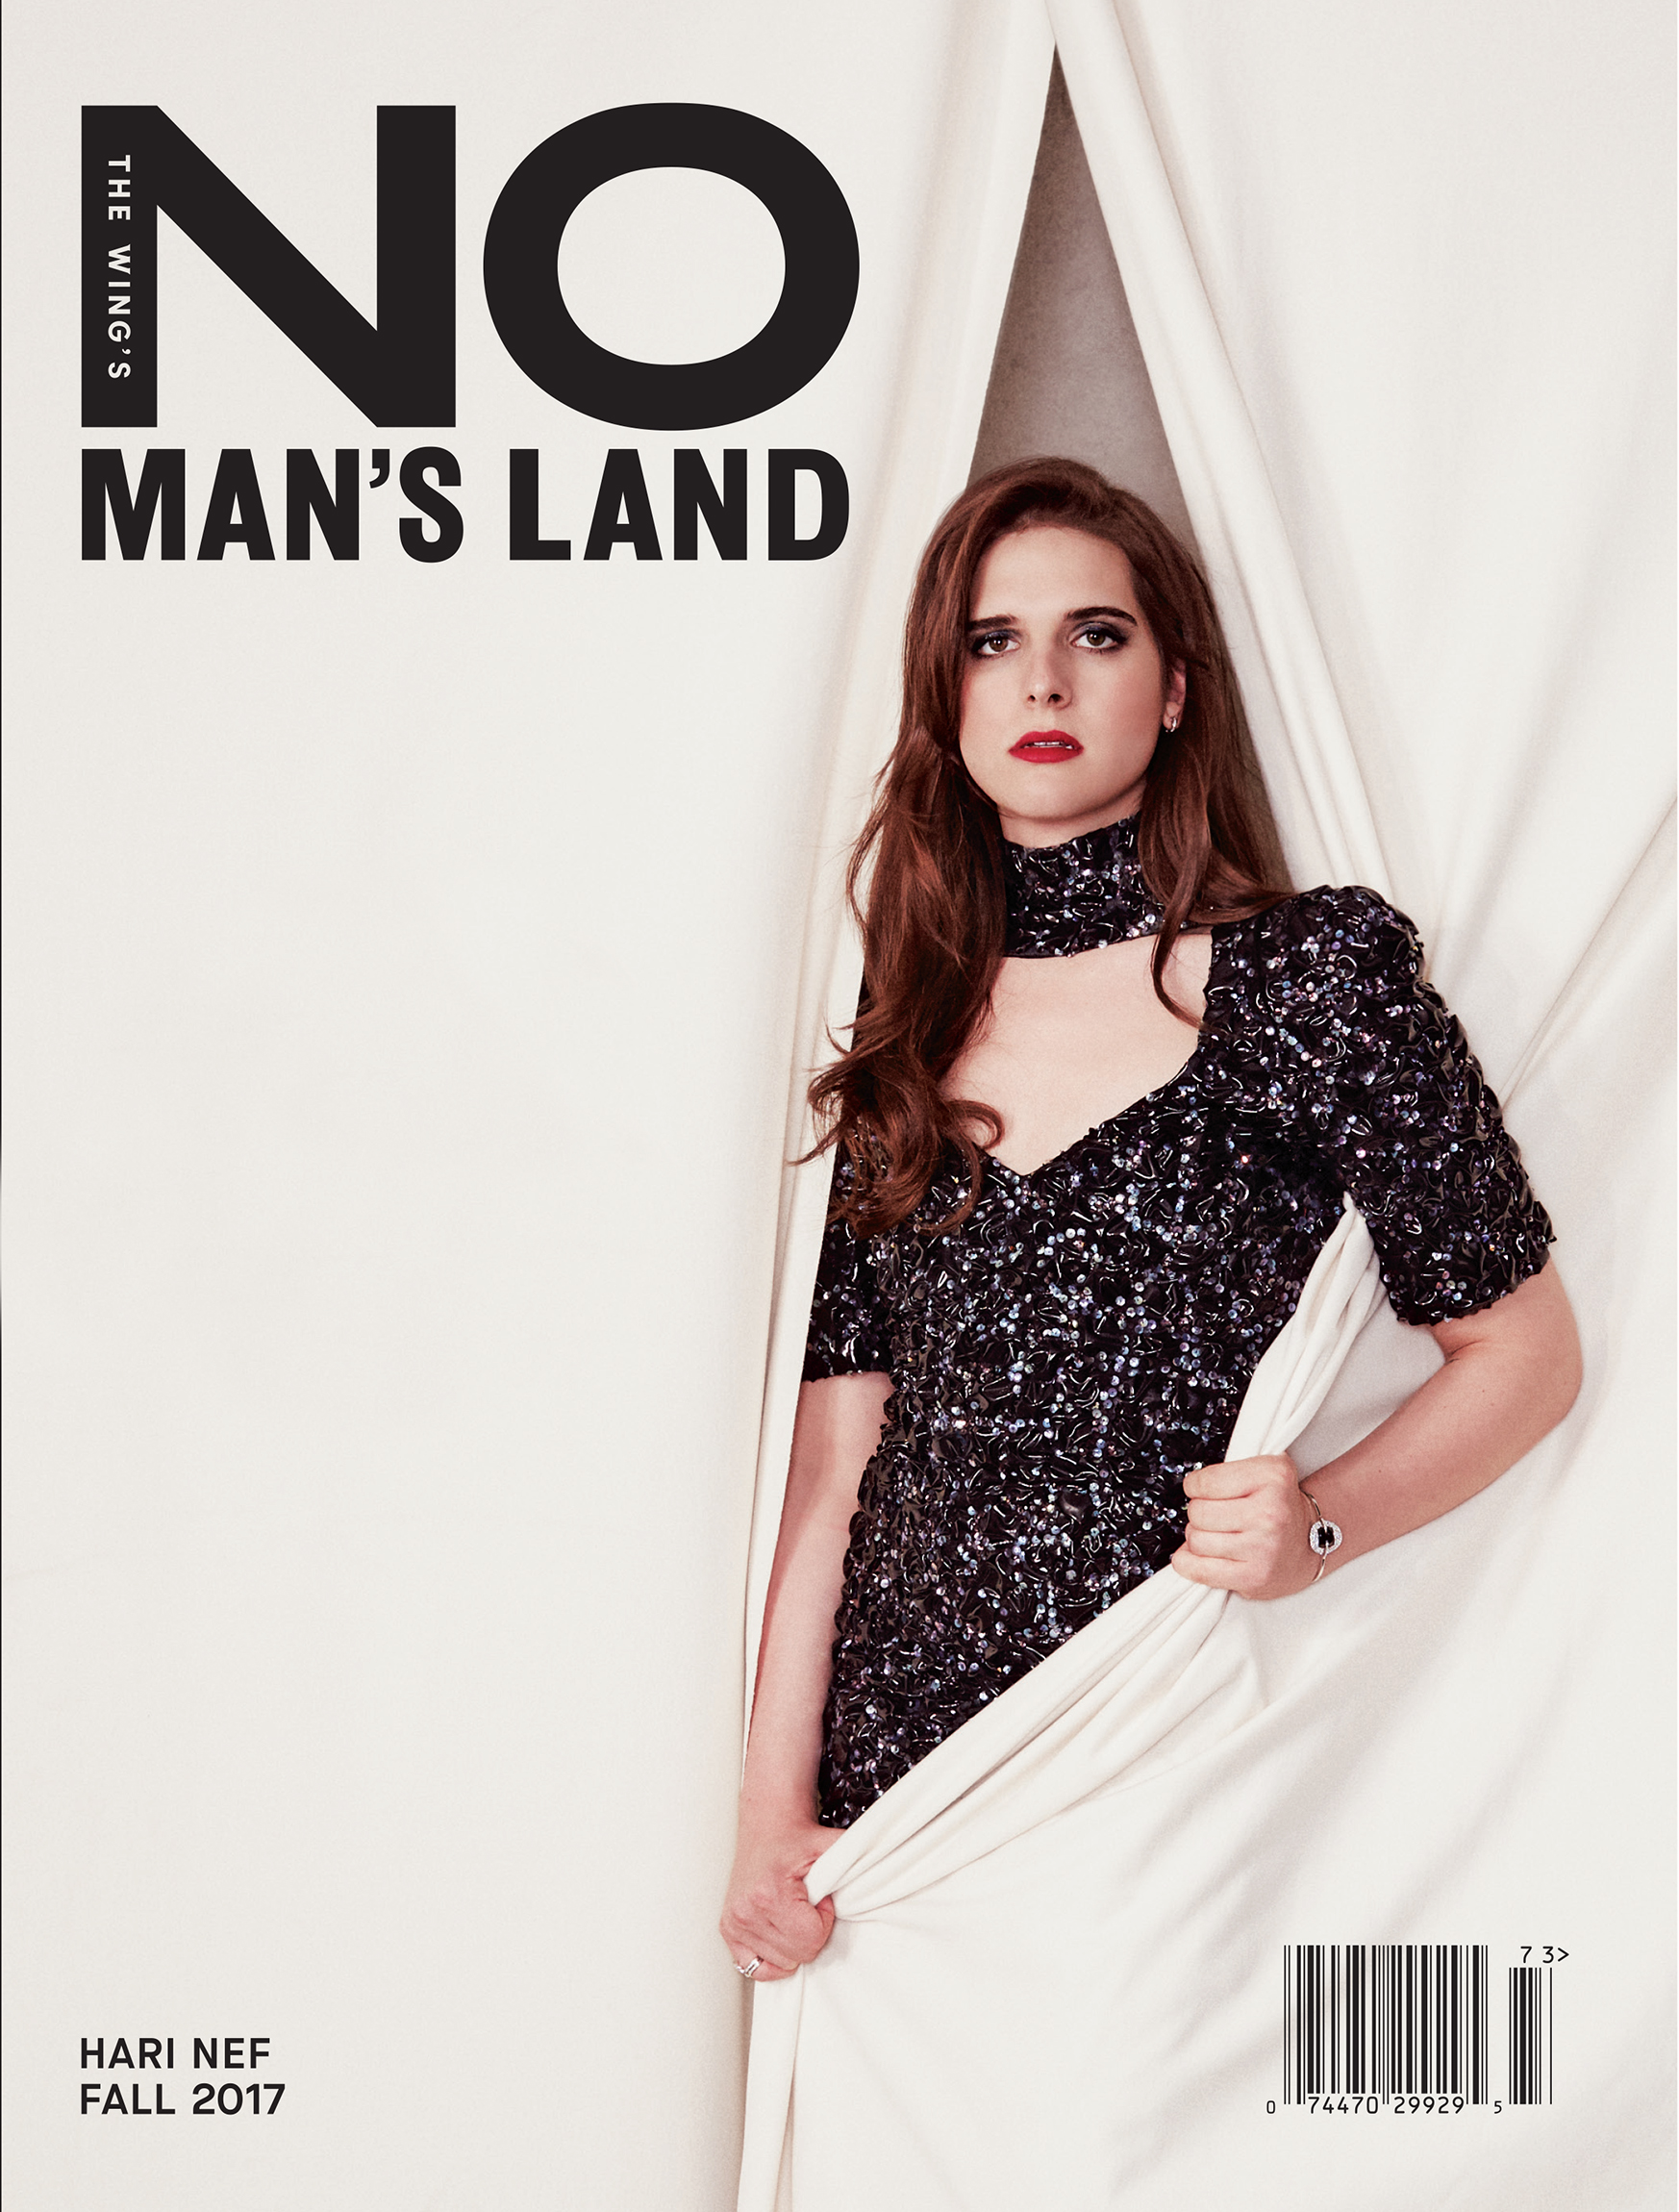 No Man's Land - Winter 2017  Photo Direction by Emily Keegin  Photographer: Kathy Lo  Fashion:  Coquito Cassibba   Design: Pentagram